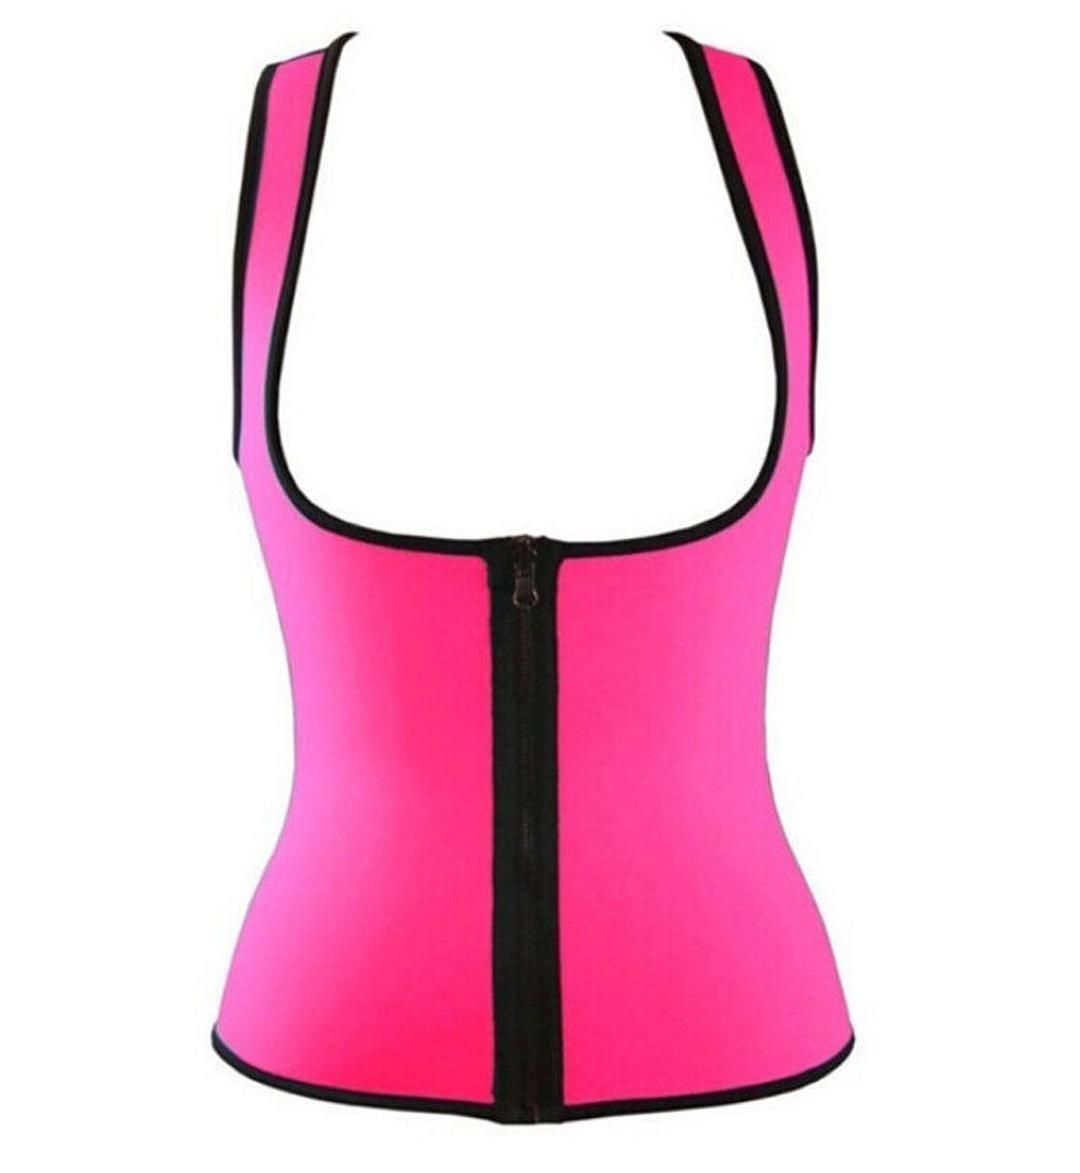 NEW Sexy Lady Women Clothing Body Shaper Slimming Waist Slim Belt Women Clothes Vest Underbust